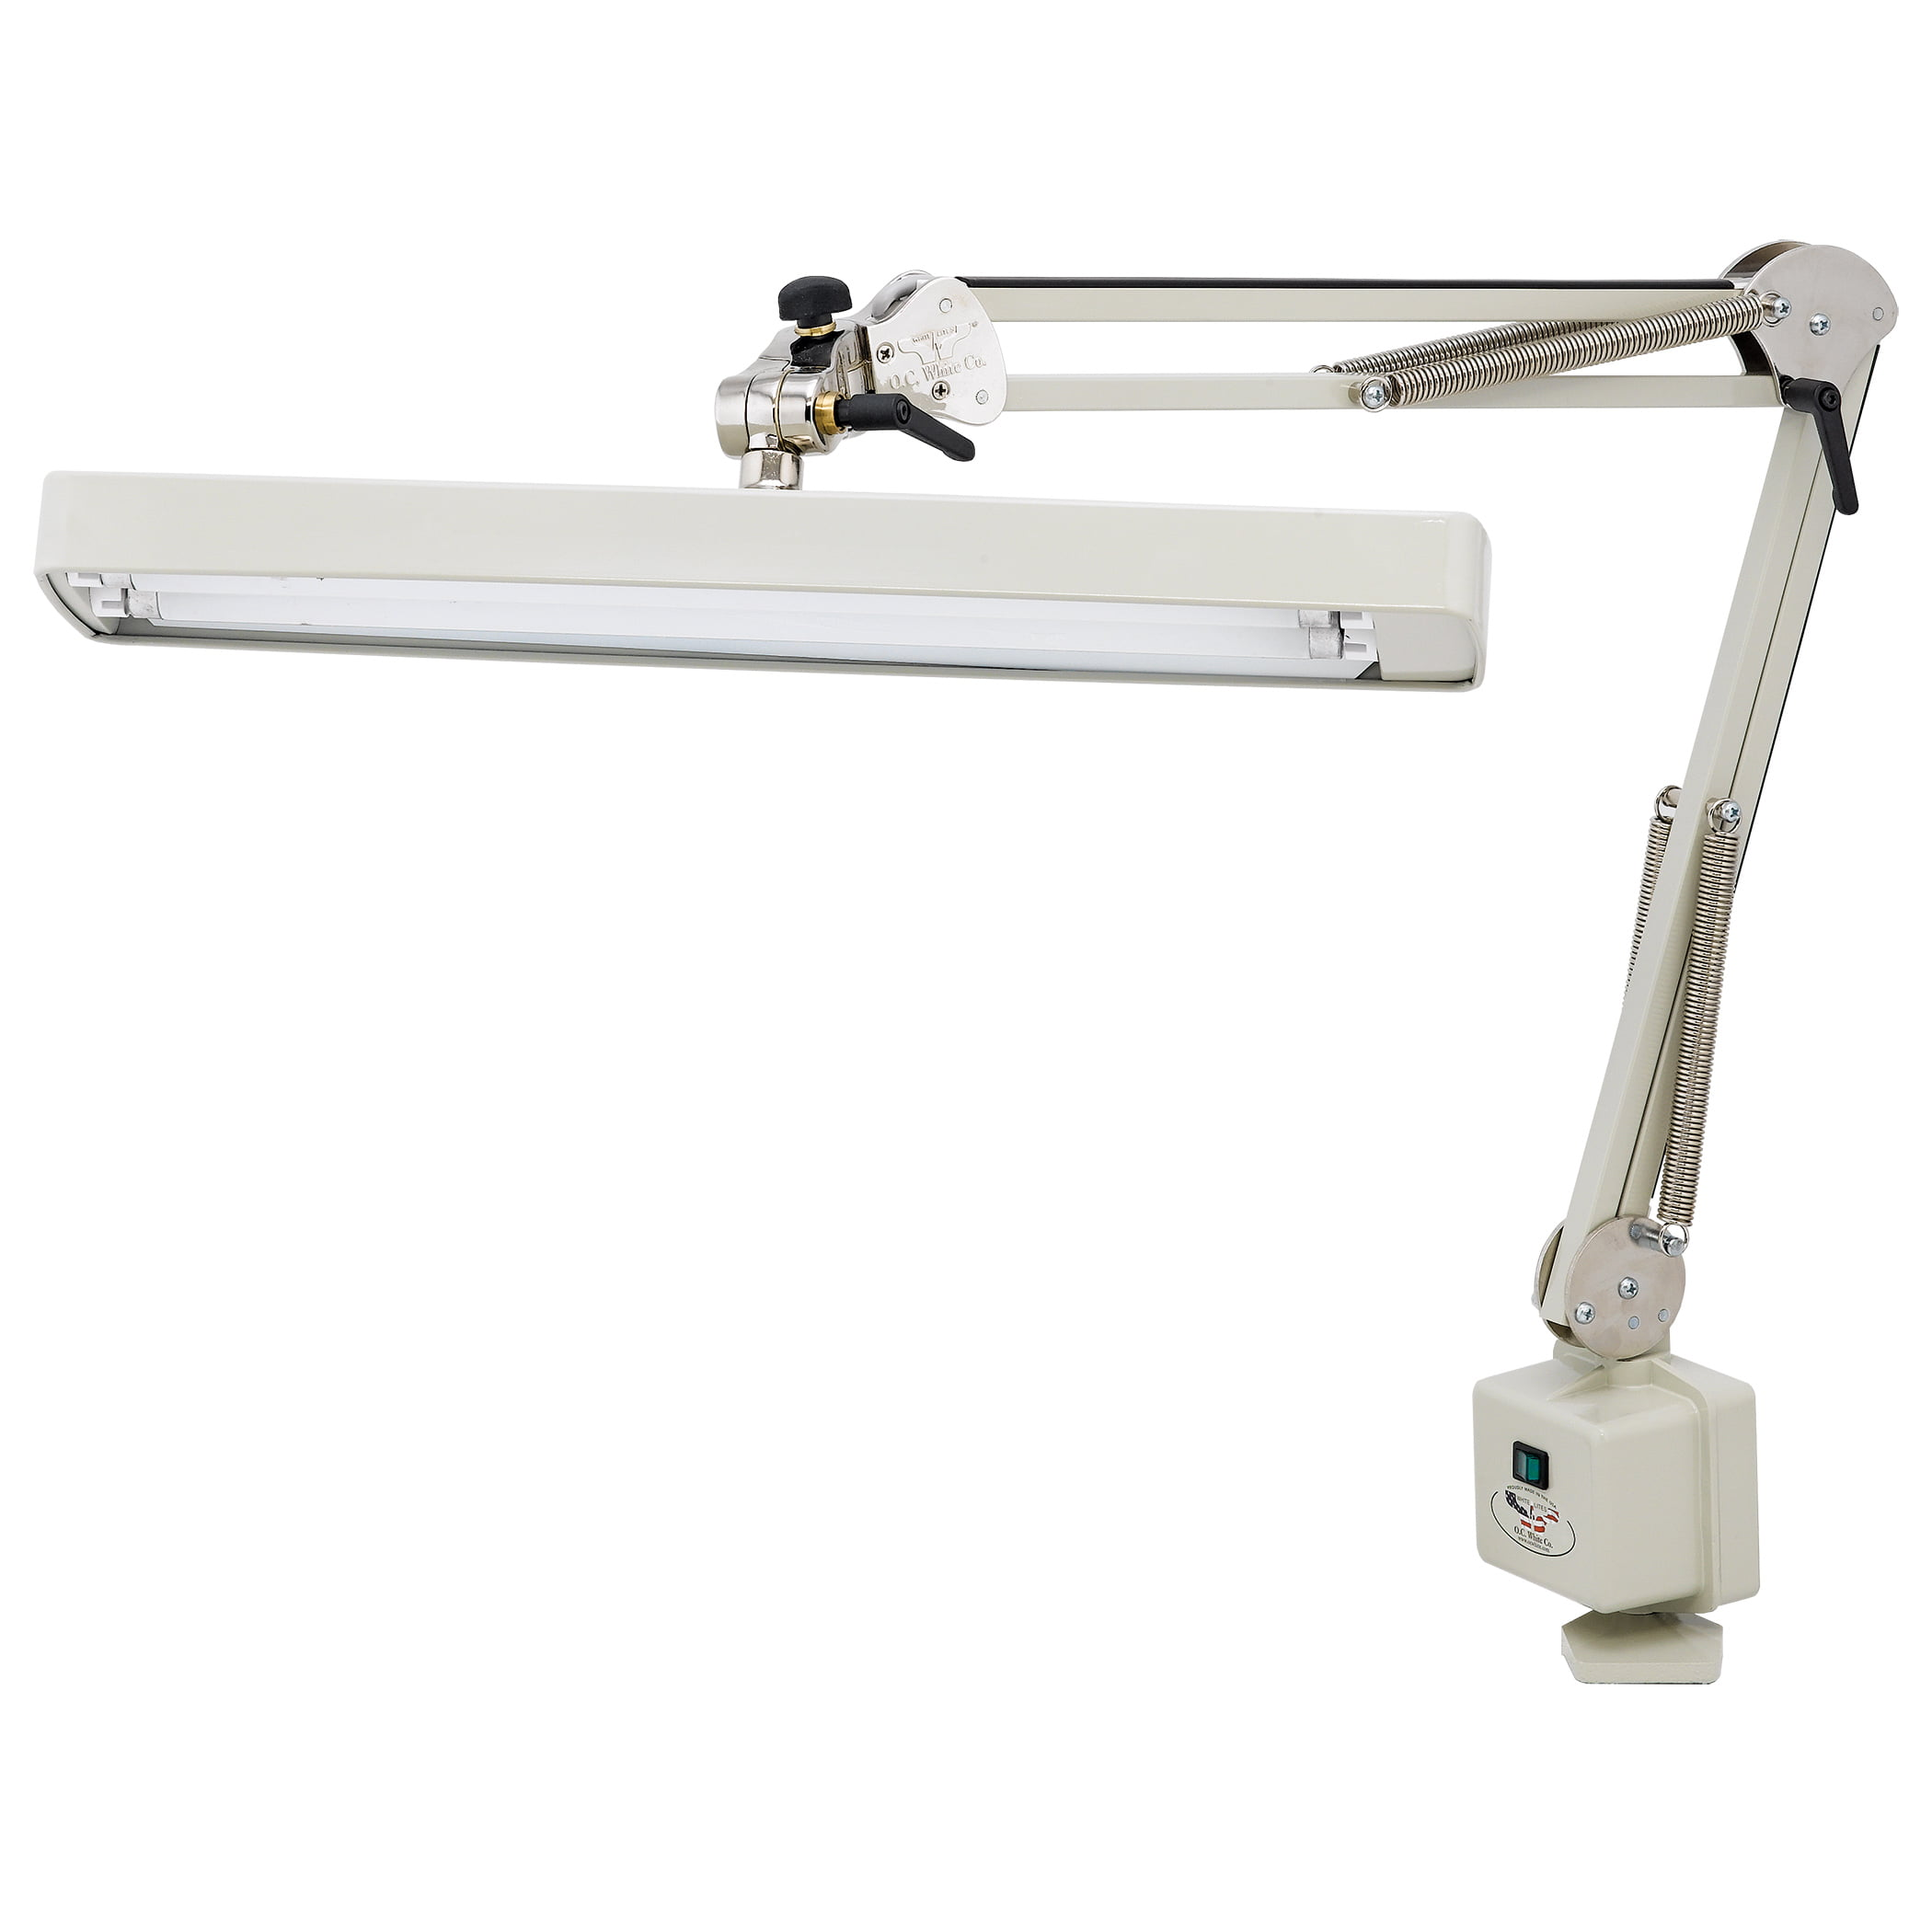 Task Lighting for business and industry